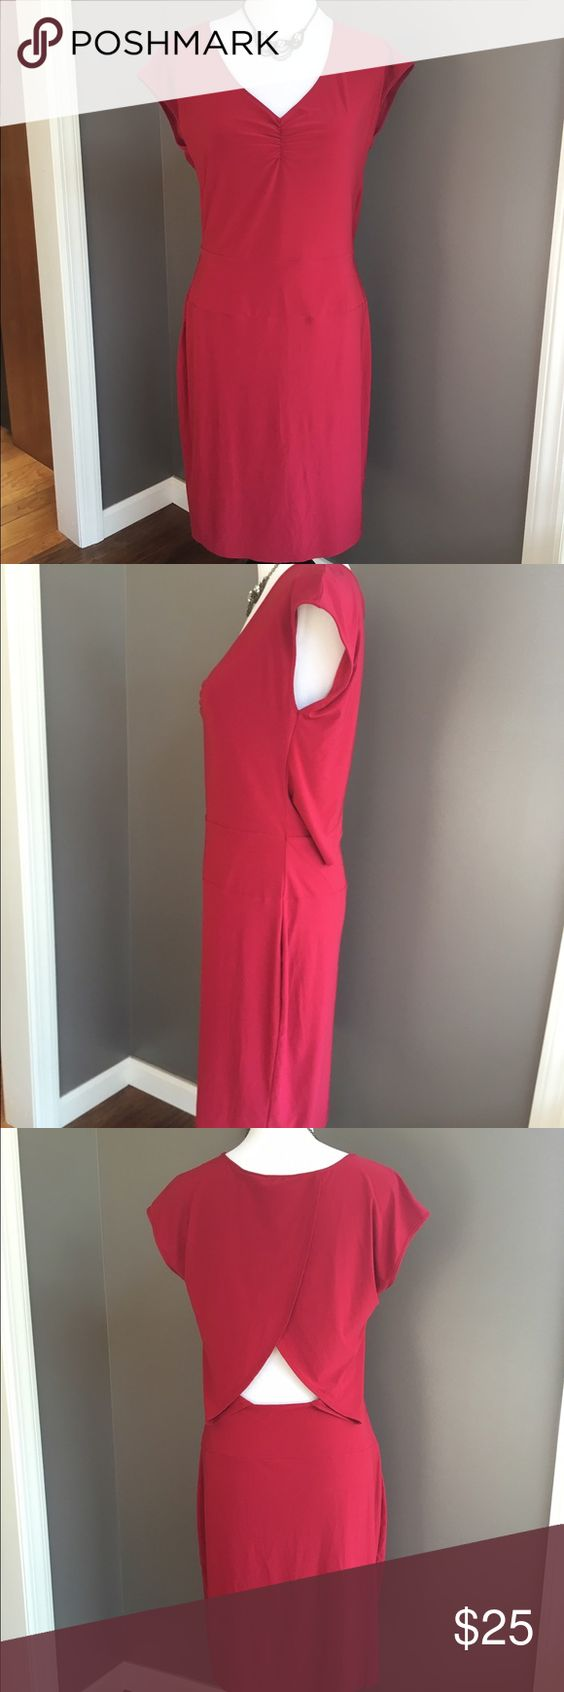 NWOT Express open back dress Brand new without tags, open back dress from Express, size large. Express Dresses